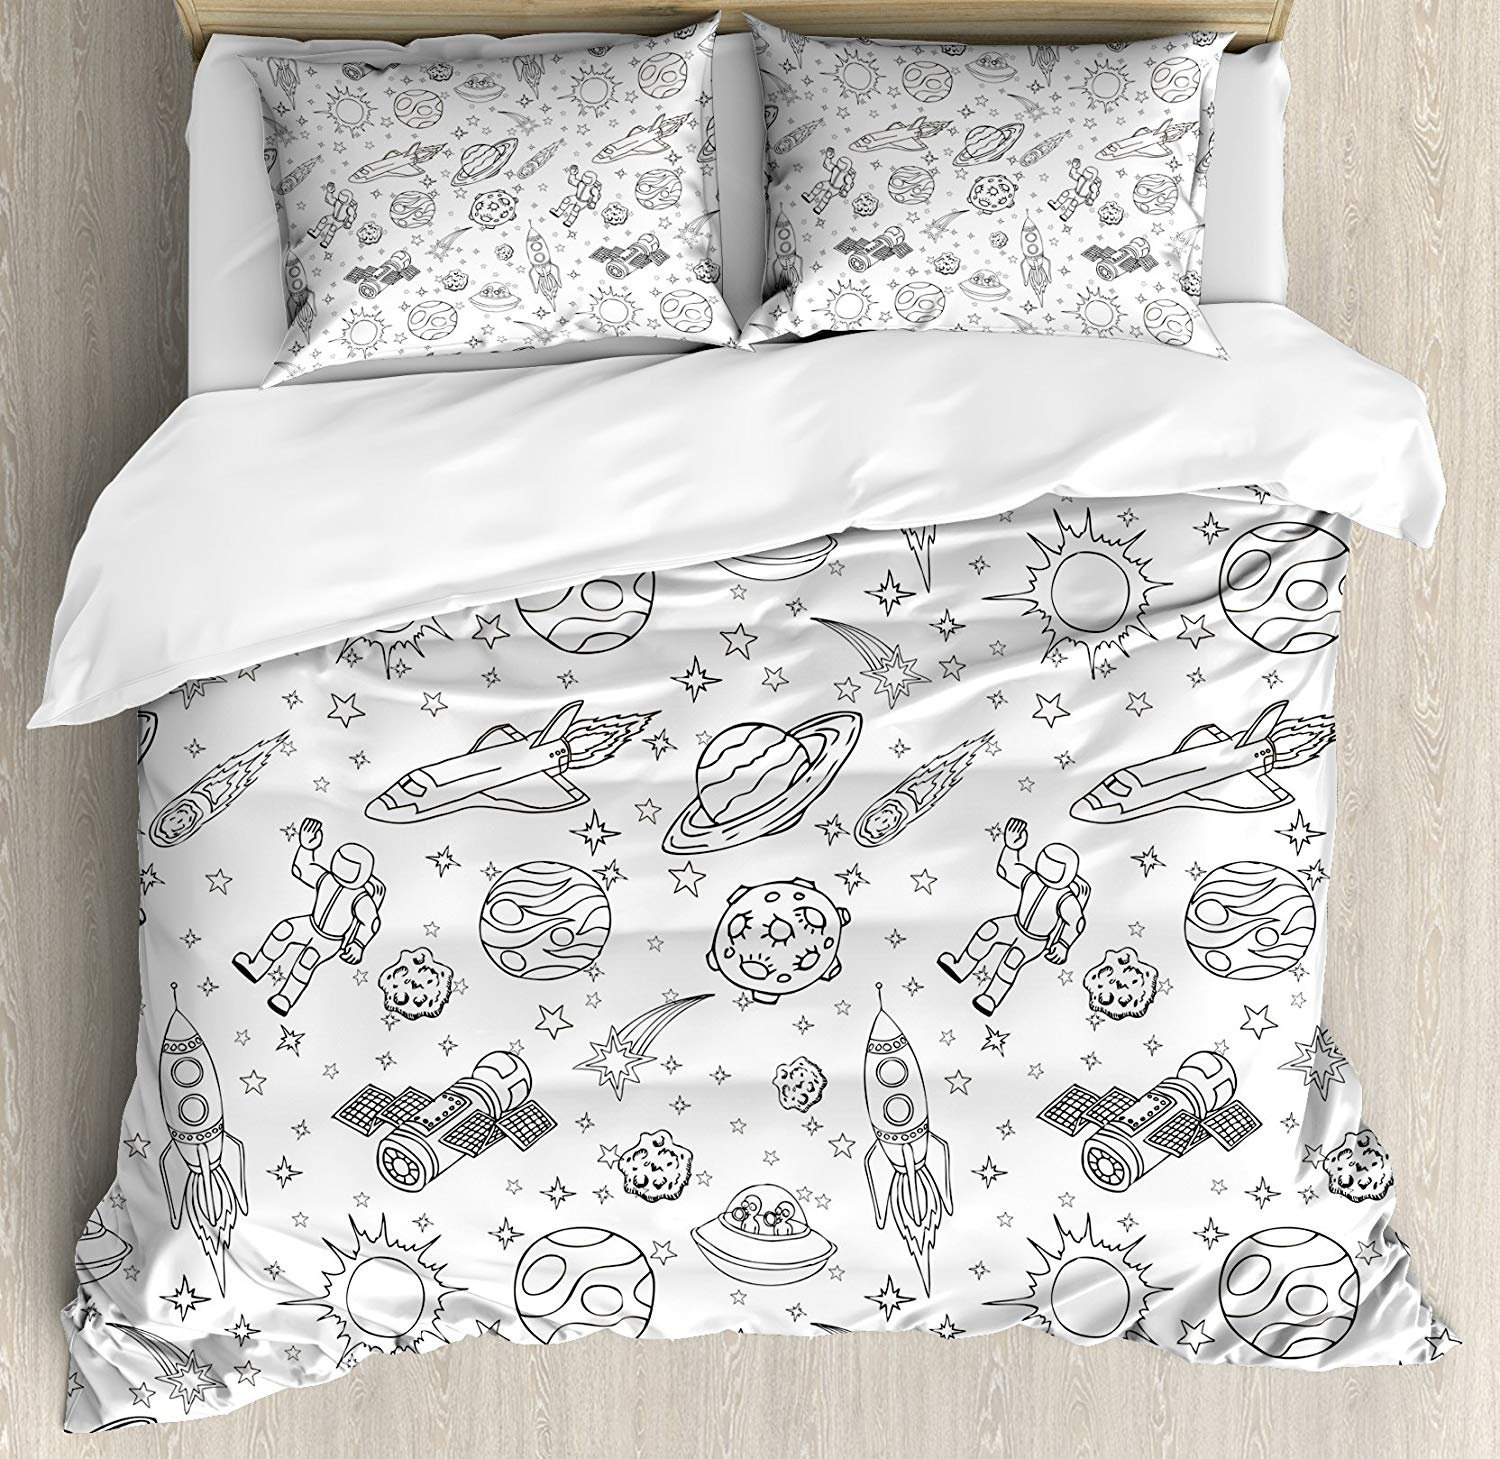 Boy's 4 Piece Bedding Set Twin Size, Doodle Solar System Astronauts Space Crafts and Shooting Stars Science Fiction Theme, Duvet Cover Set Quilt Bedspread for Childrens/Kids/Teens/Adults, Black White